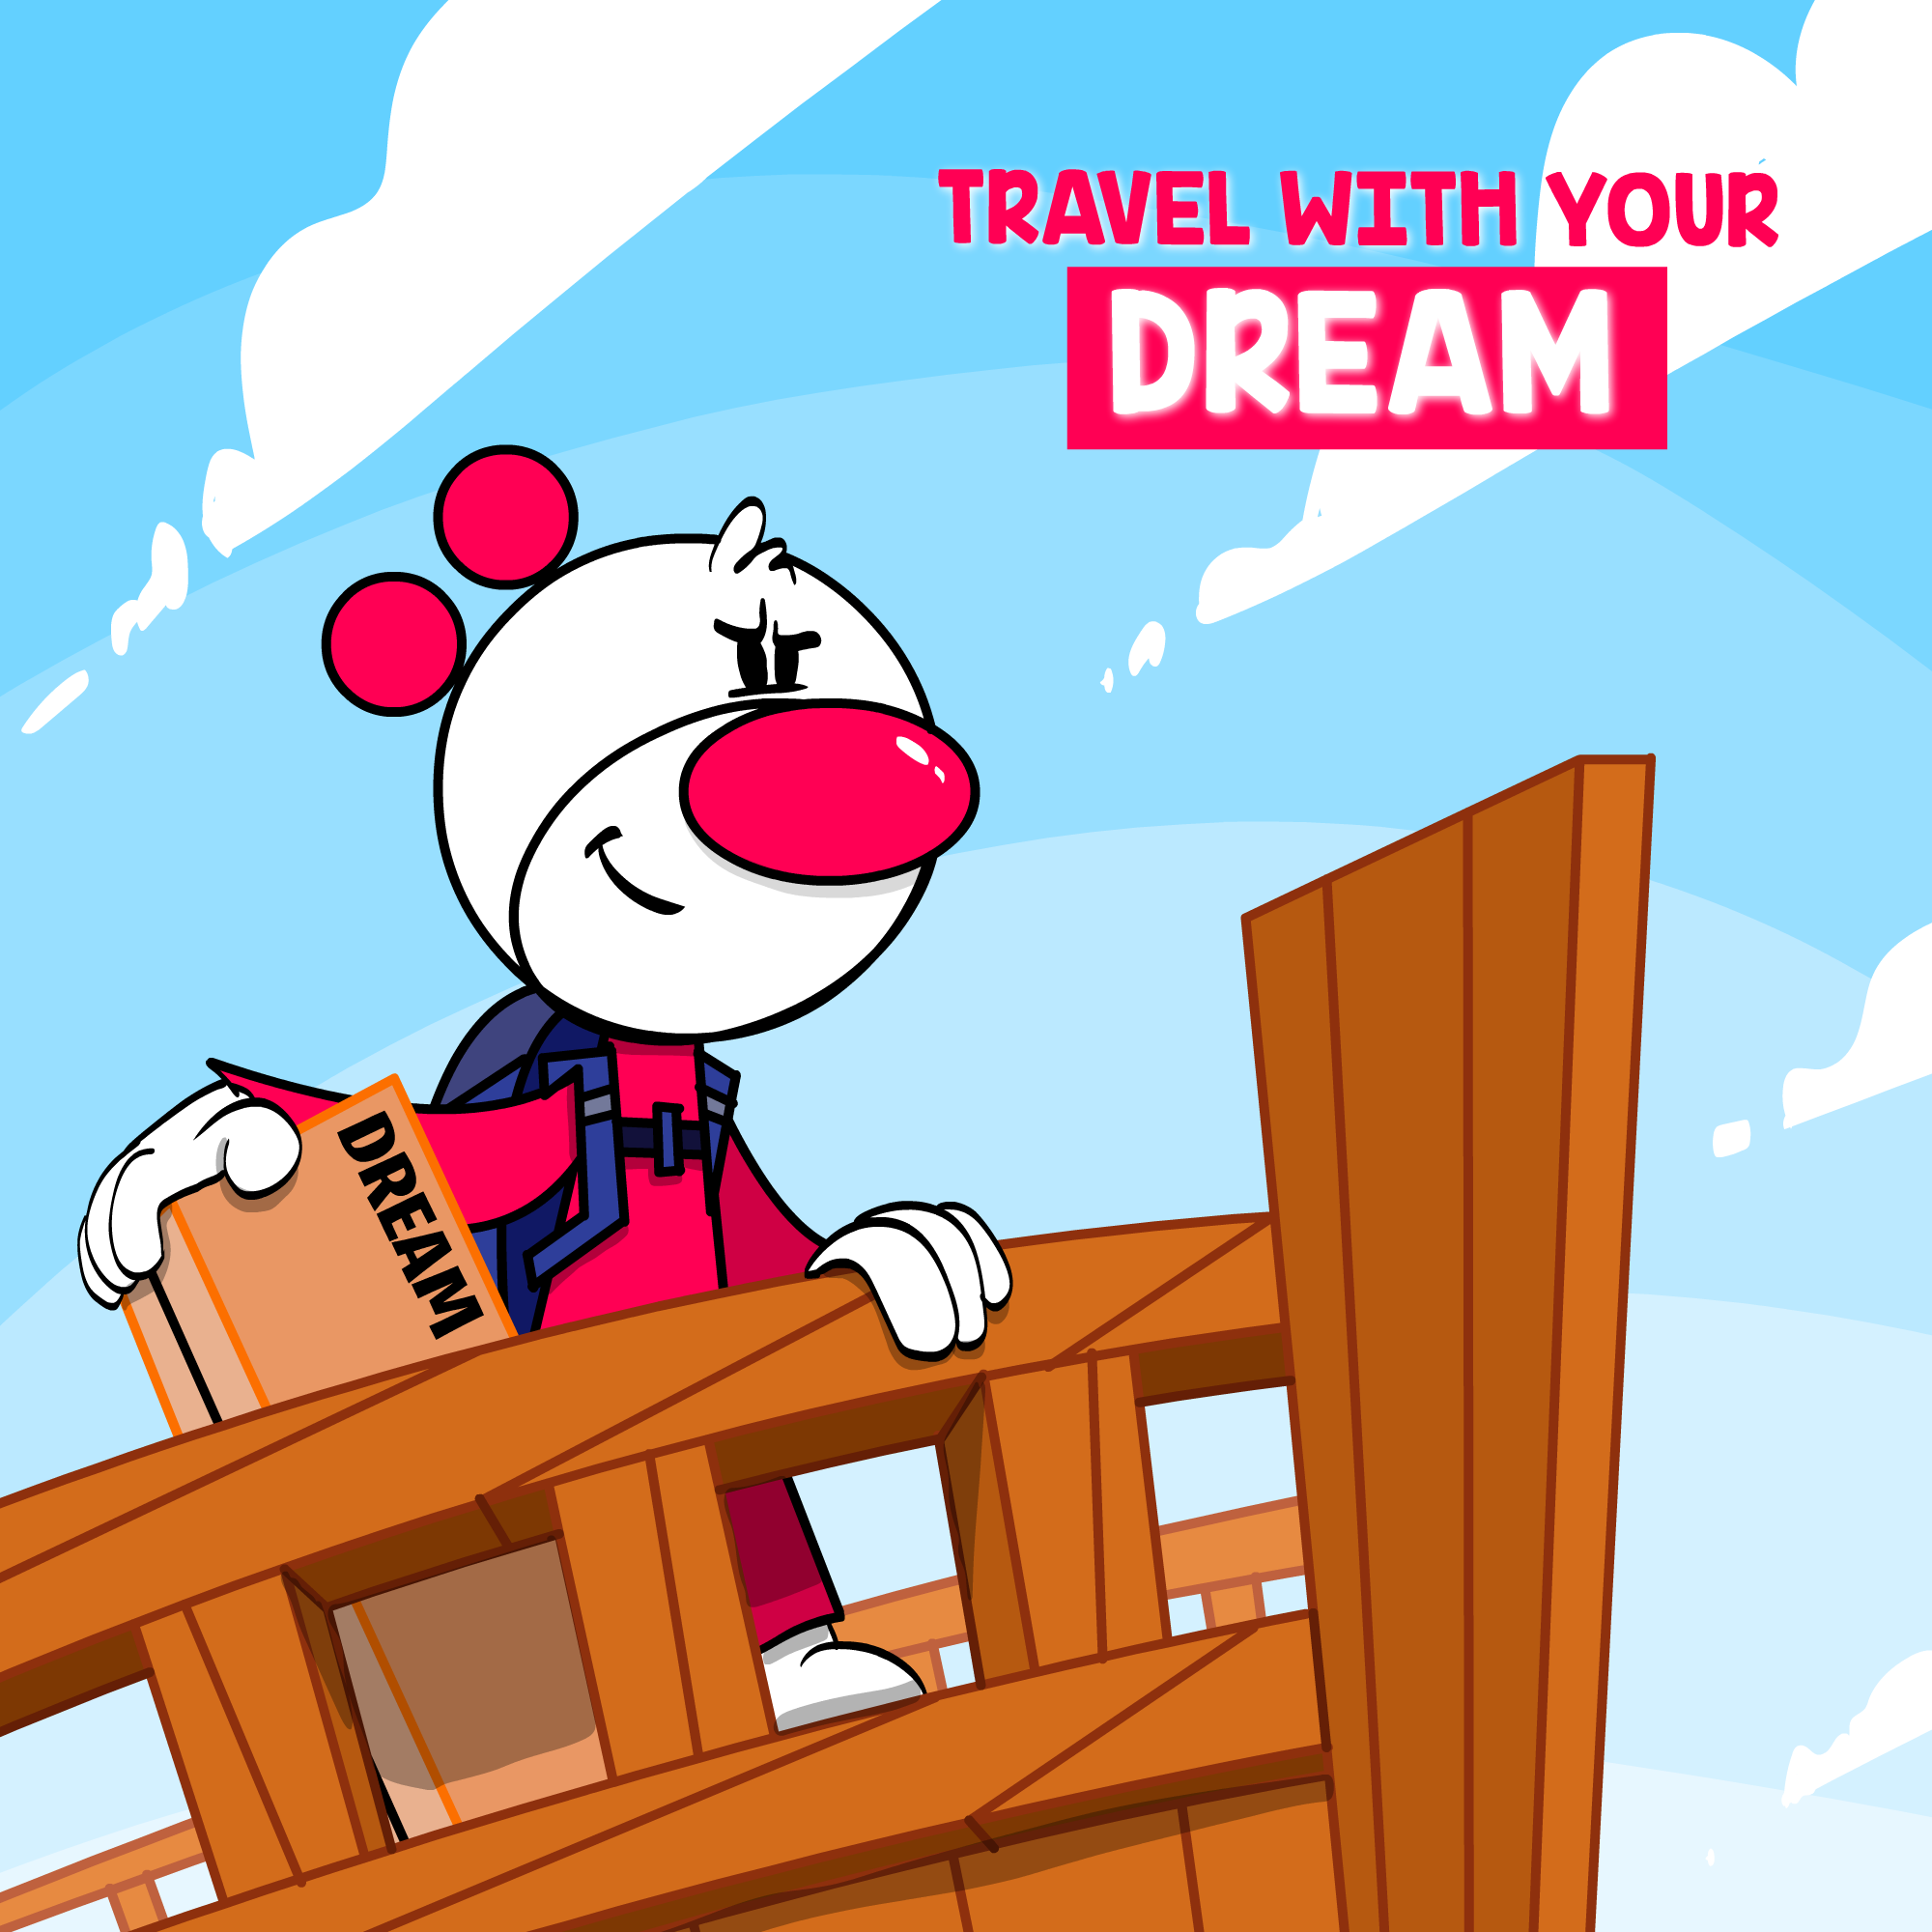 Piwooz is traveling with his dream